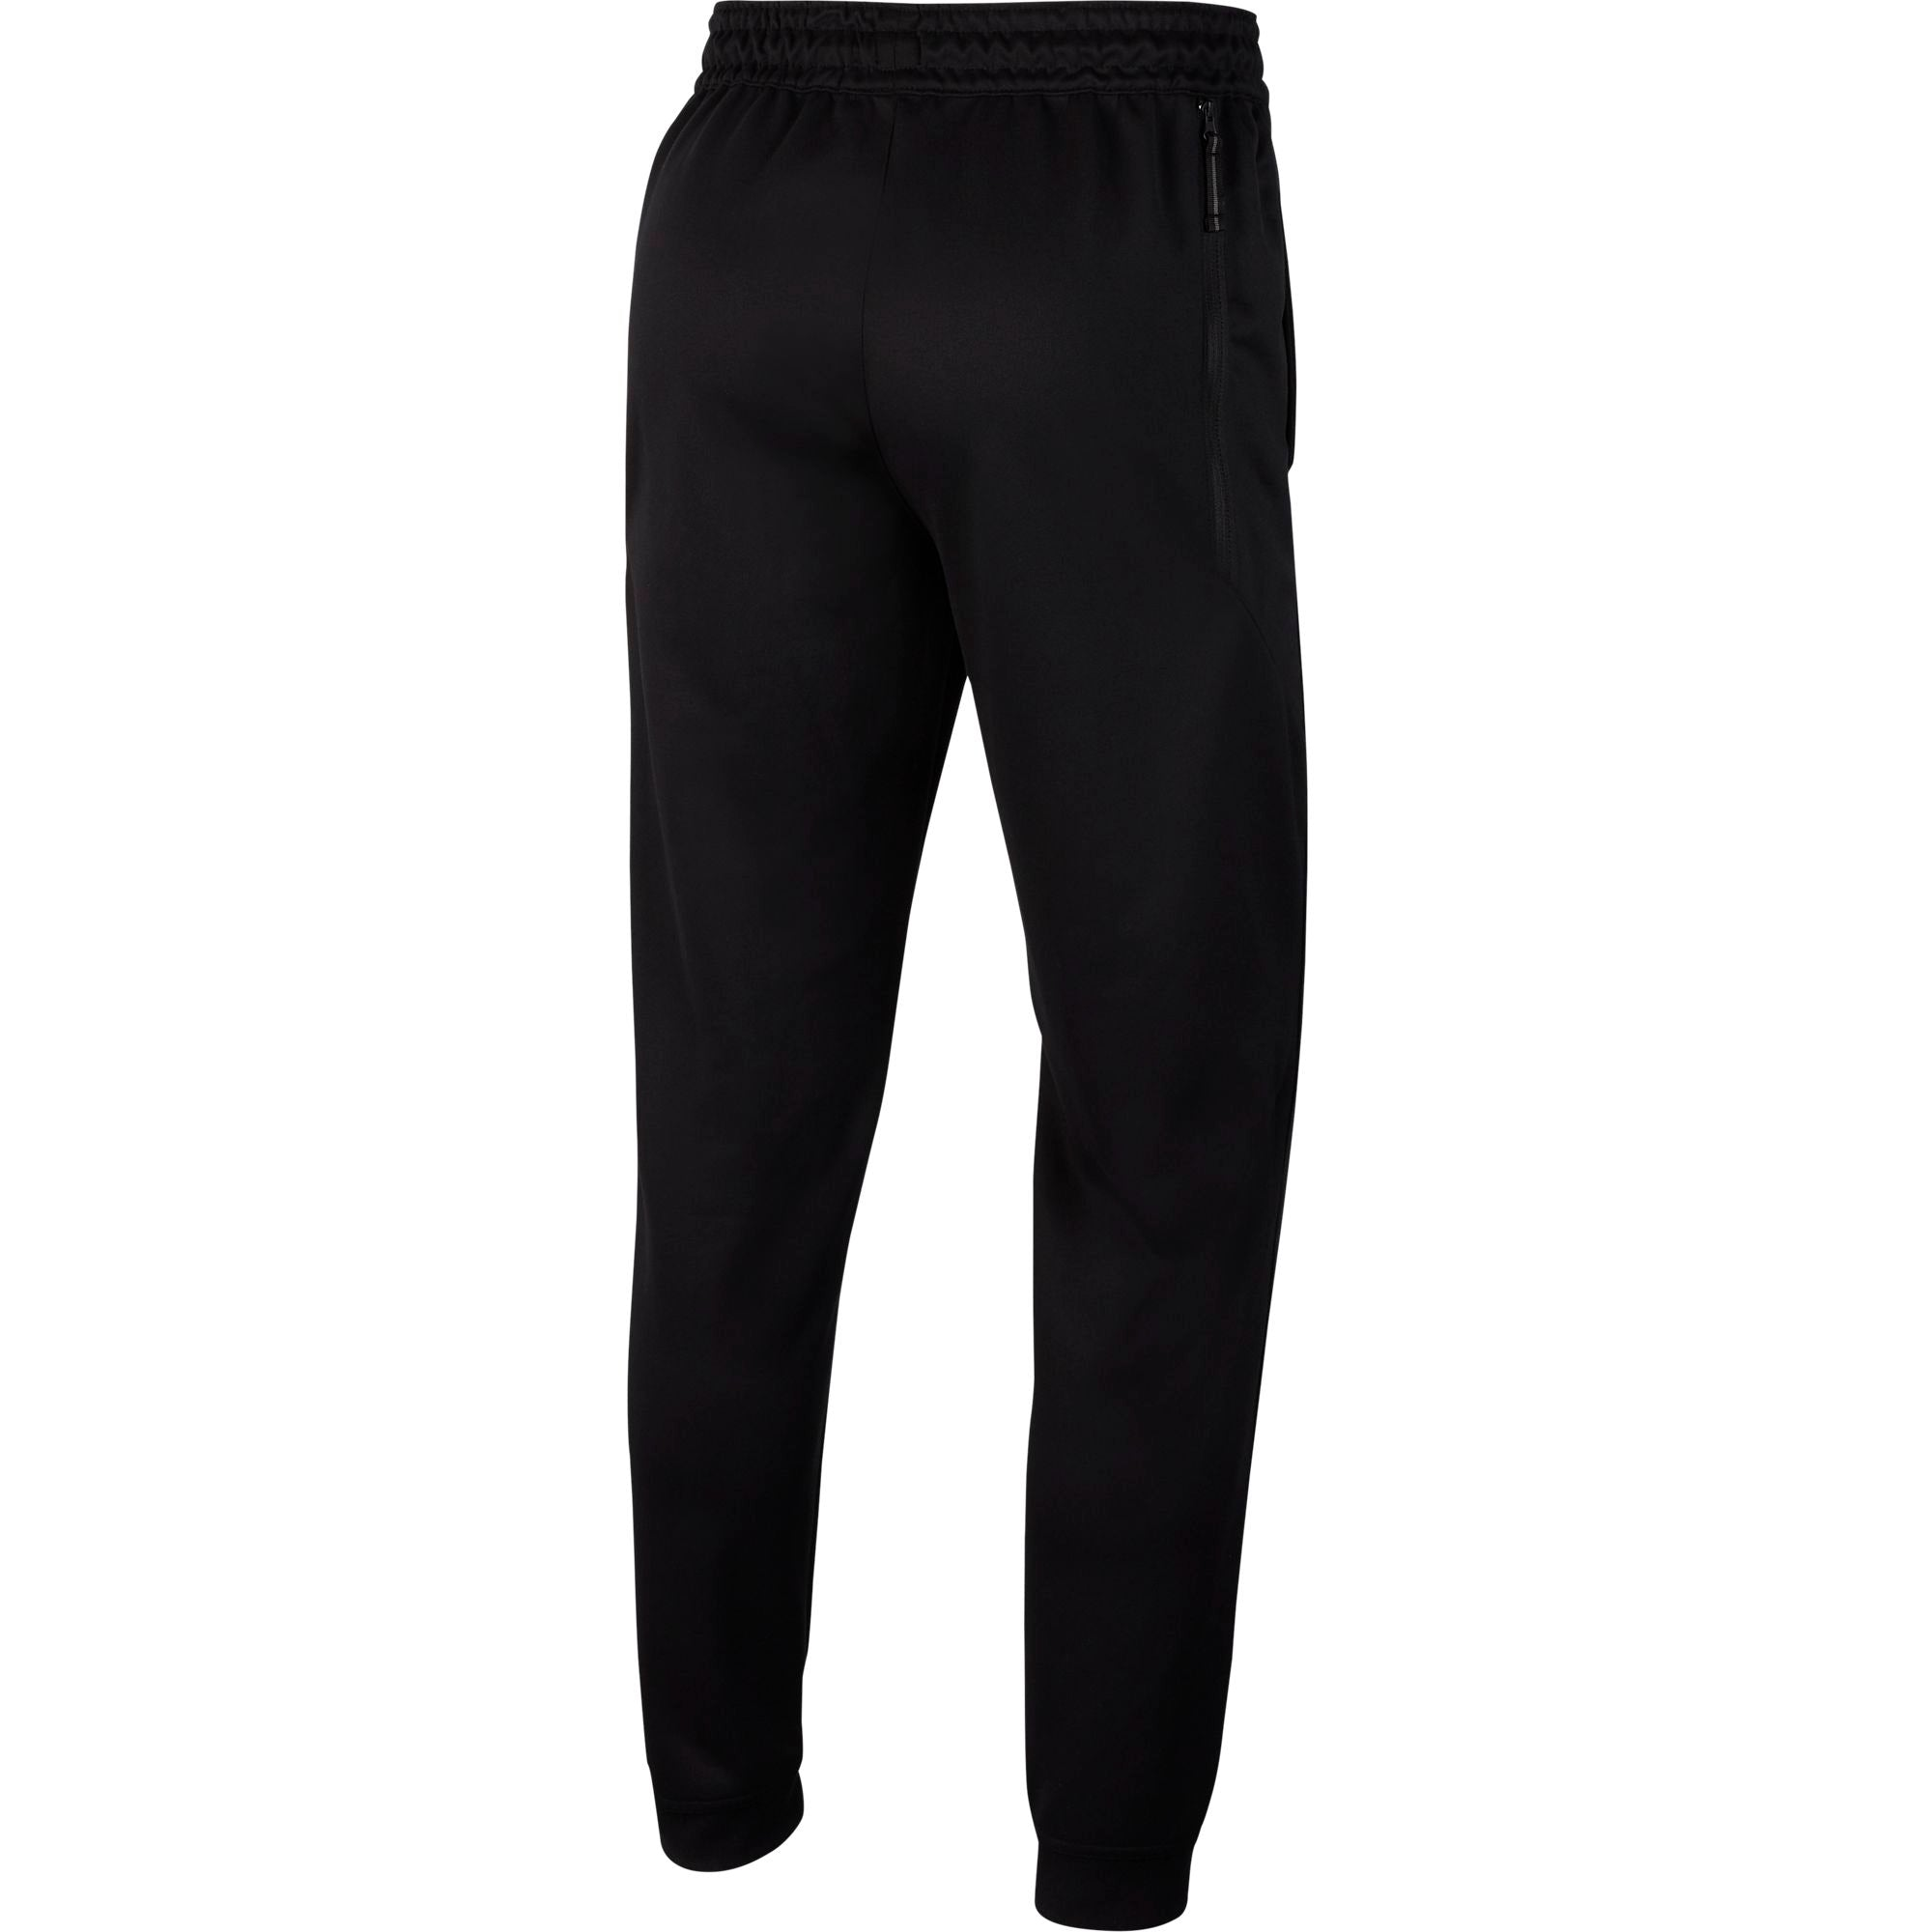 Nike Basketball Spotlight Pants - Black/Anthracite